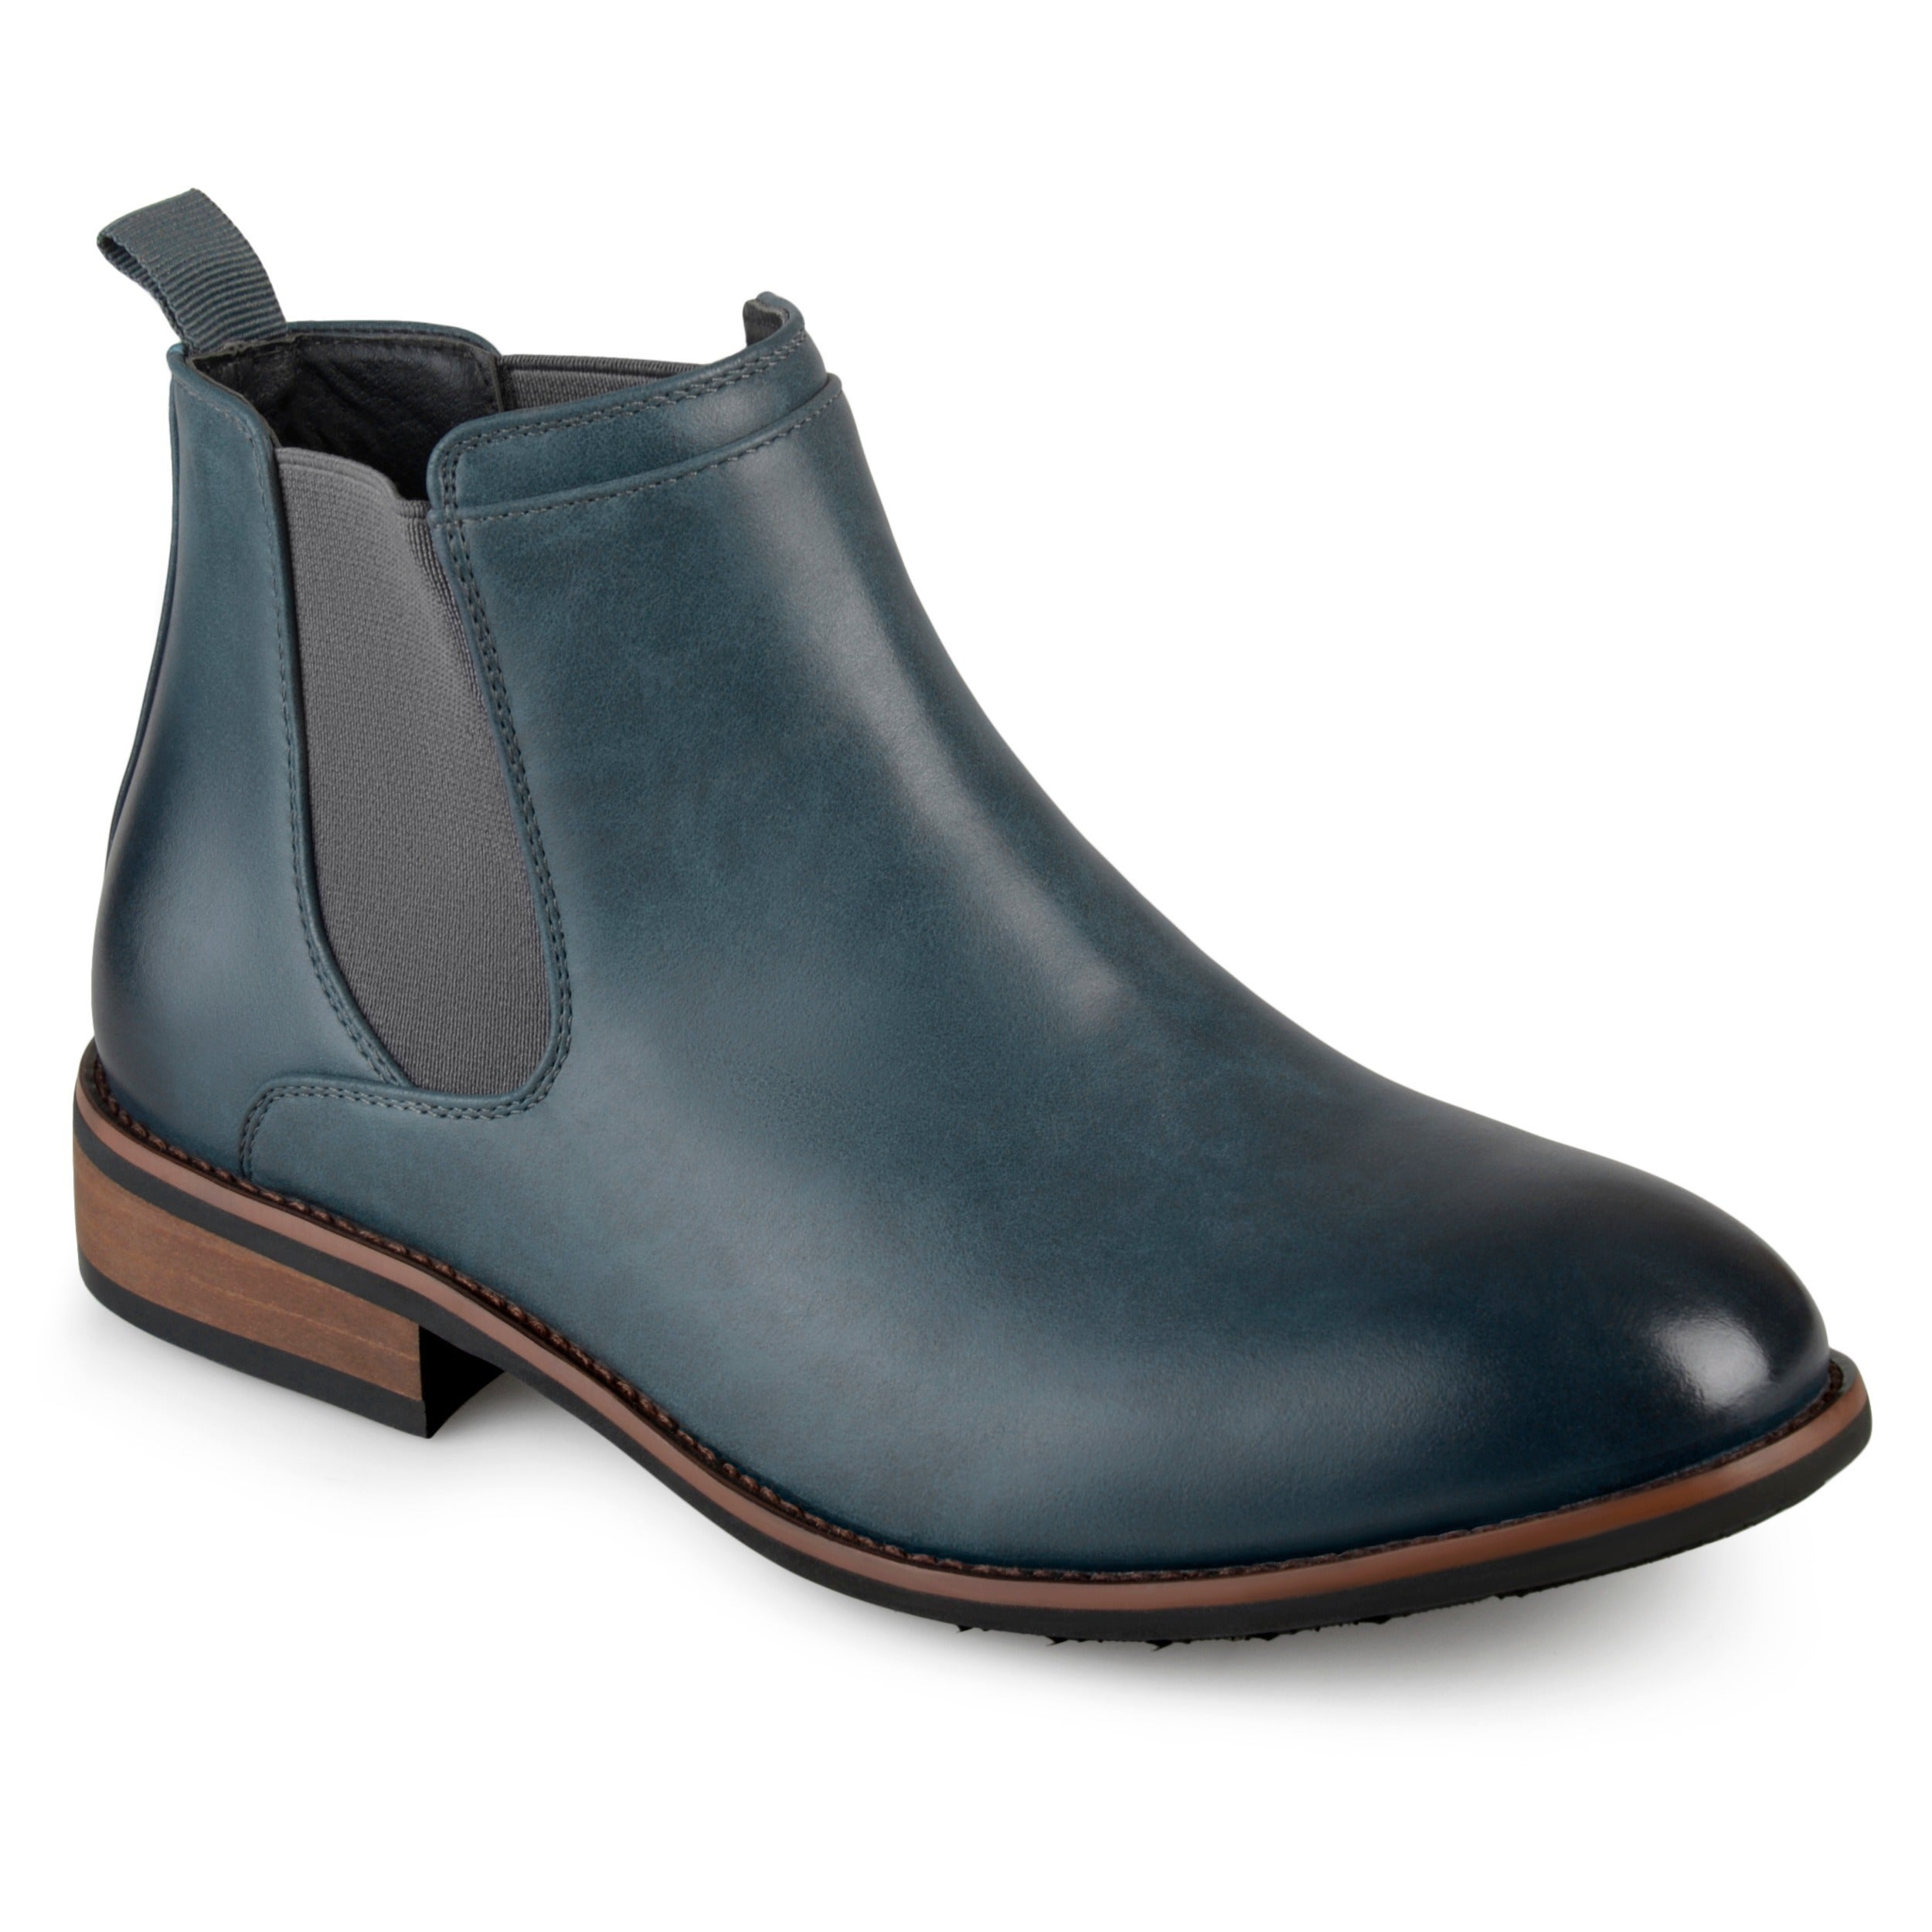 2bf9f70be79 Vance Co. Men's 'Landon' Round Toe High Top Chelsea Dress Boots